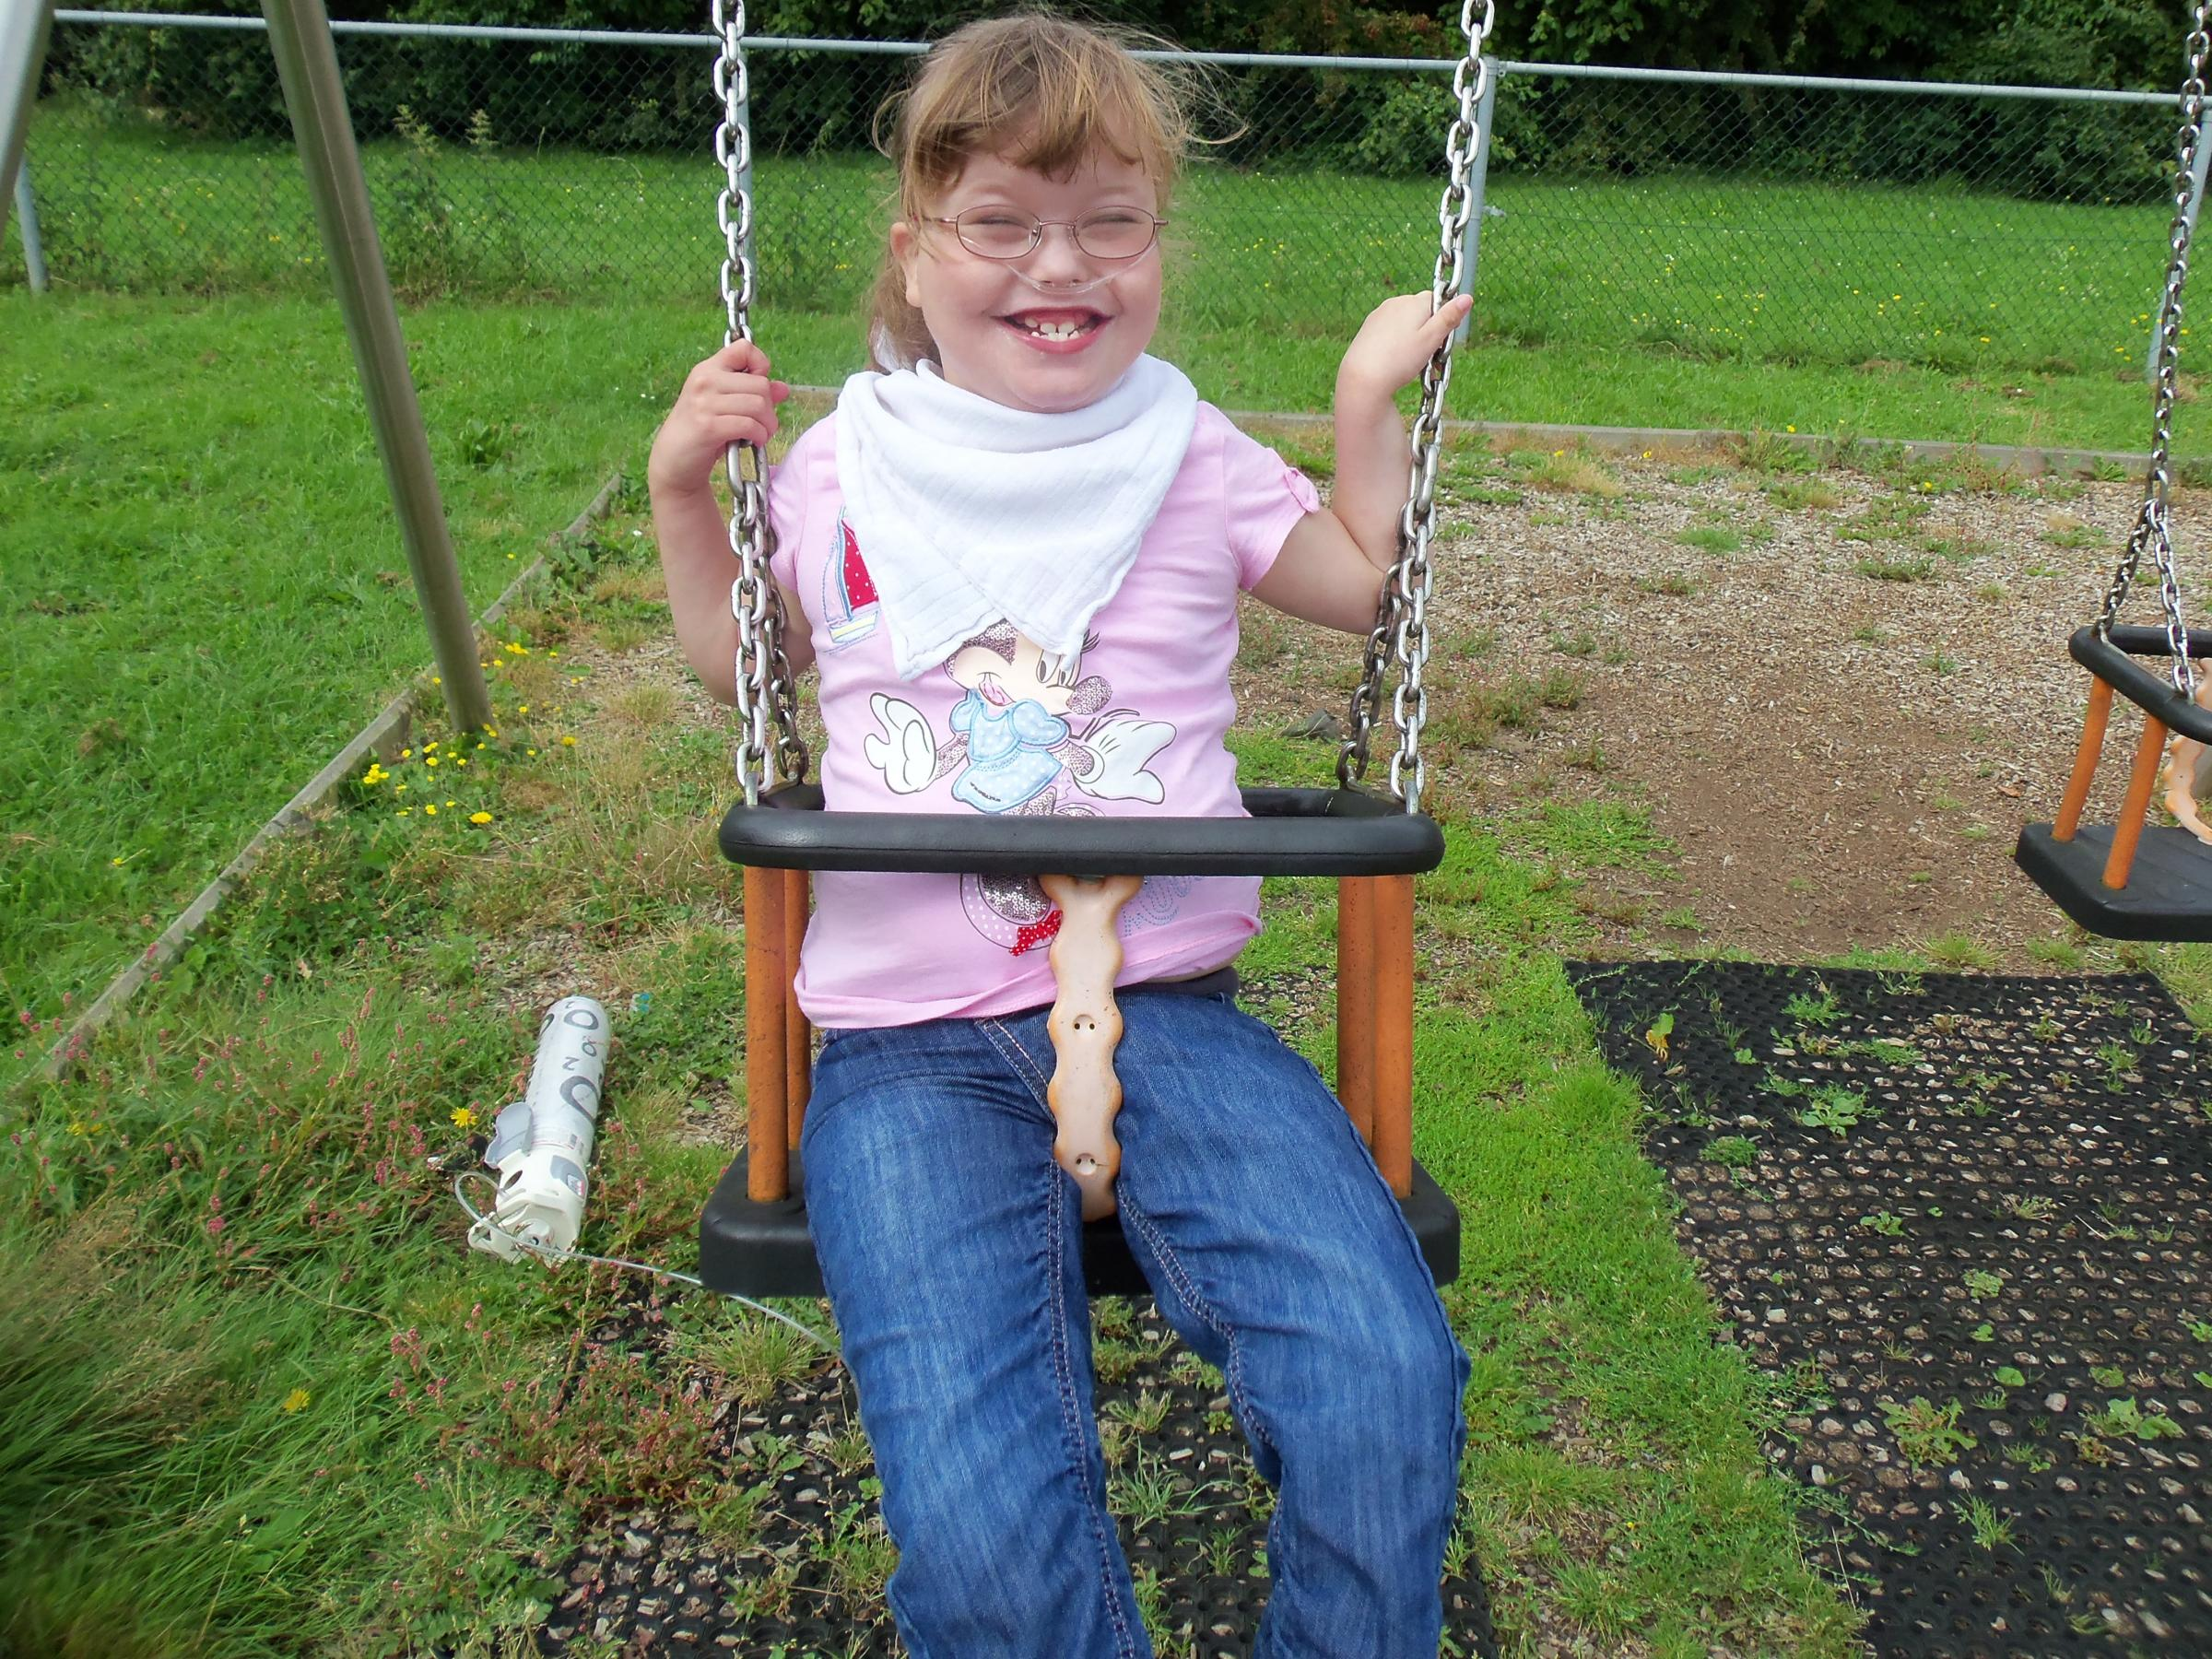 Jess enjoys playing on a special swing